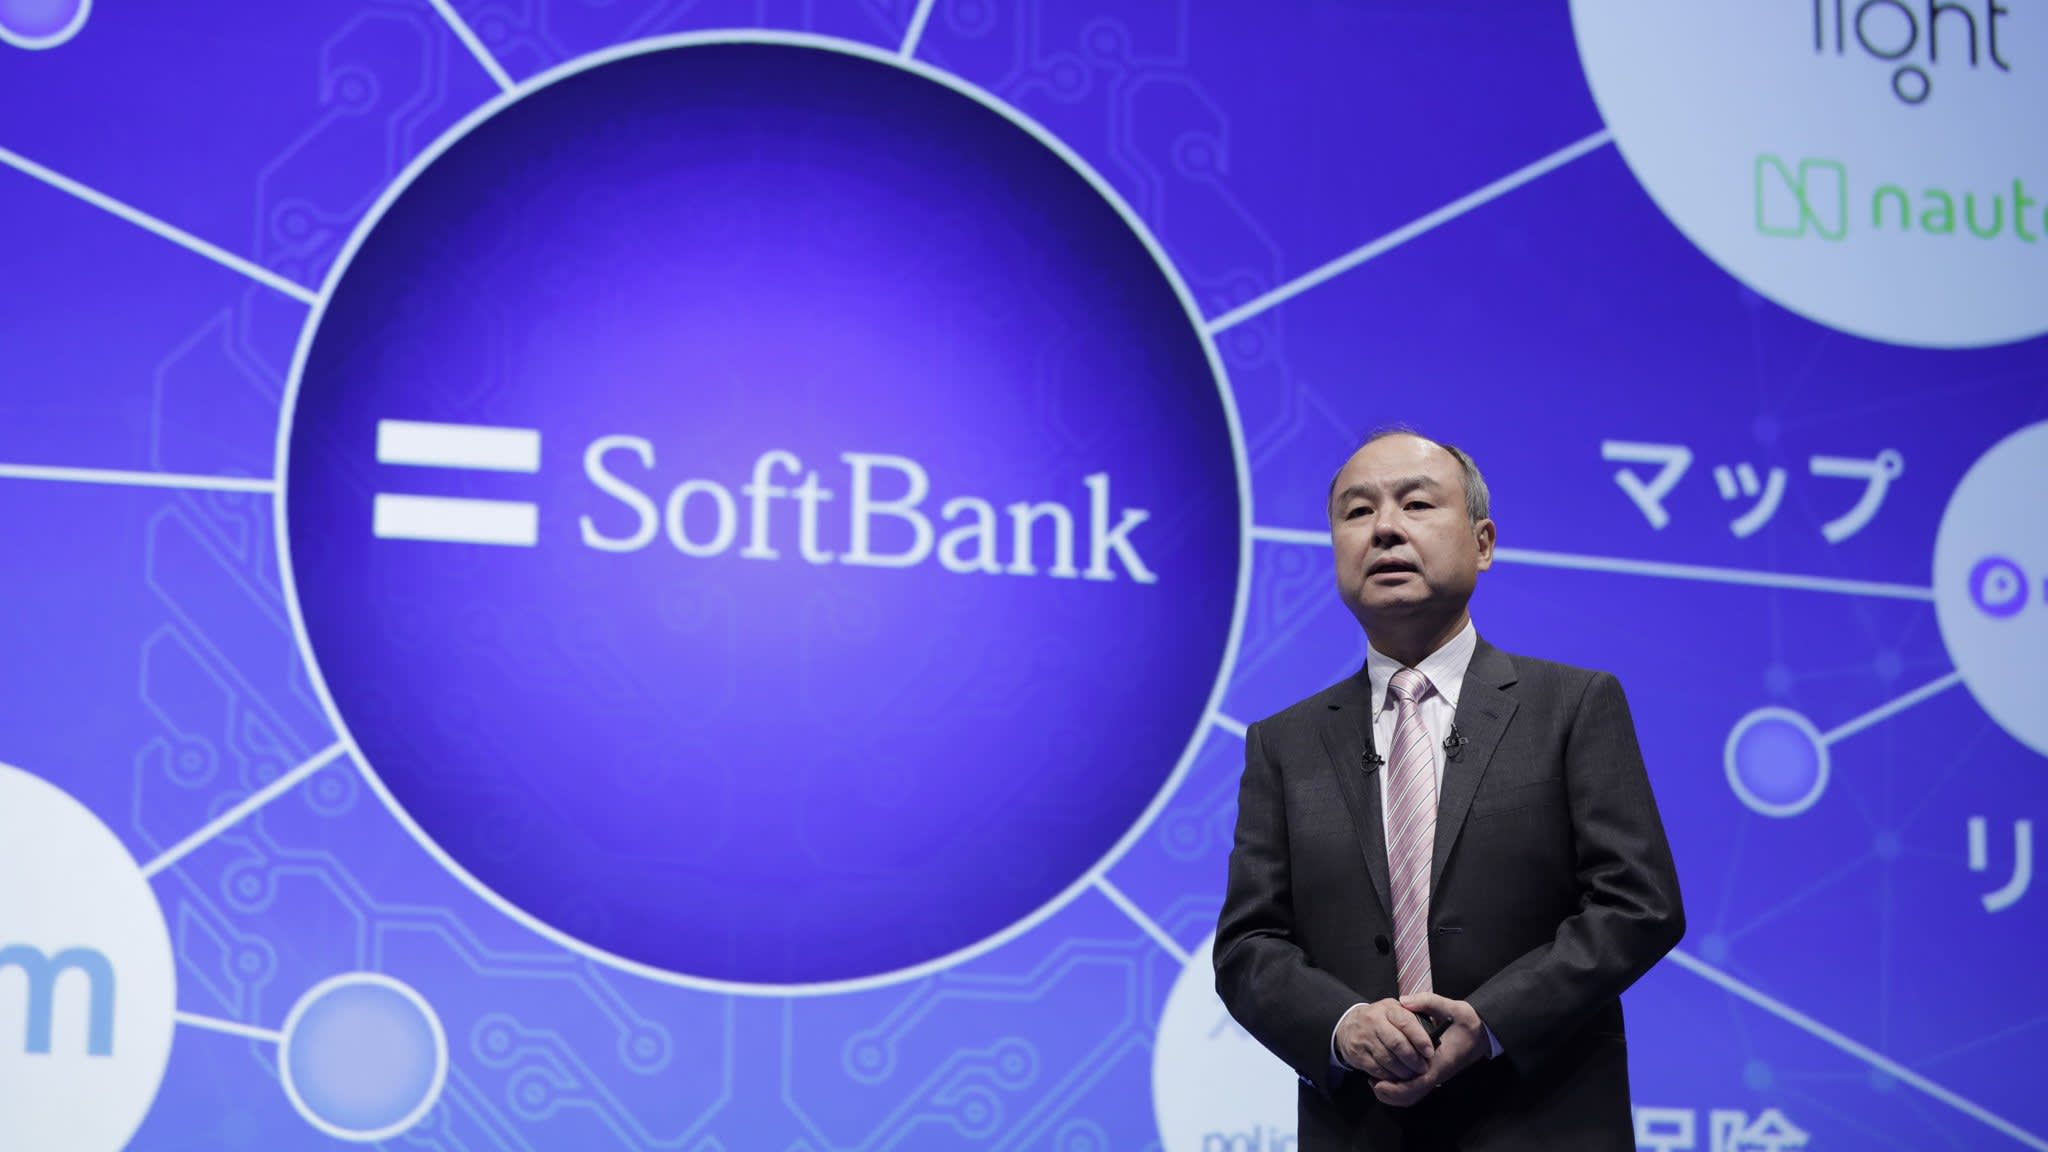 SoftBank lines up bankers for record IPO of mobile unit